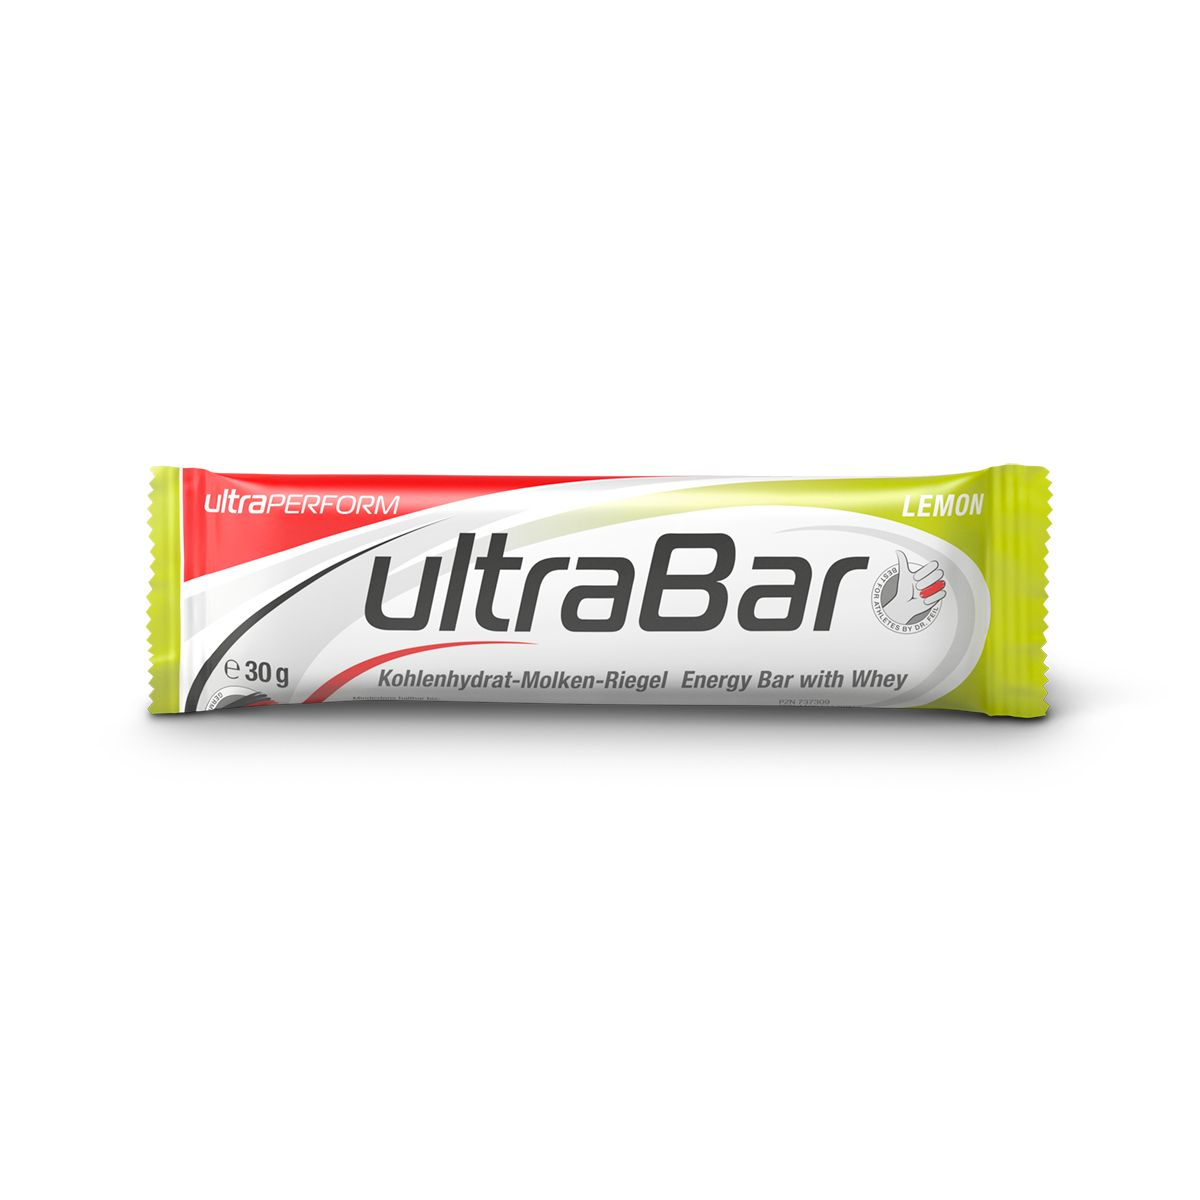 ultraBAR carbohydrate whey protein bar